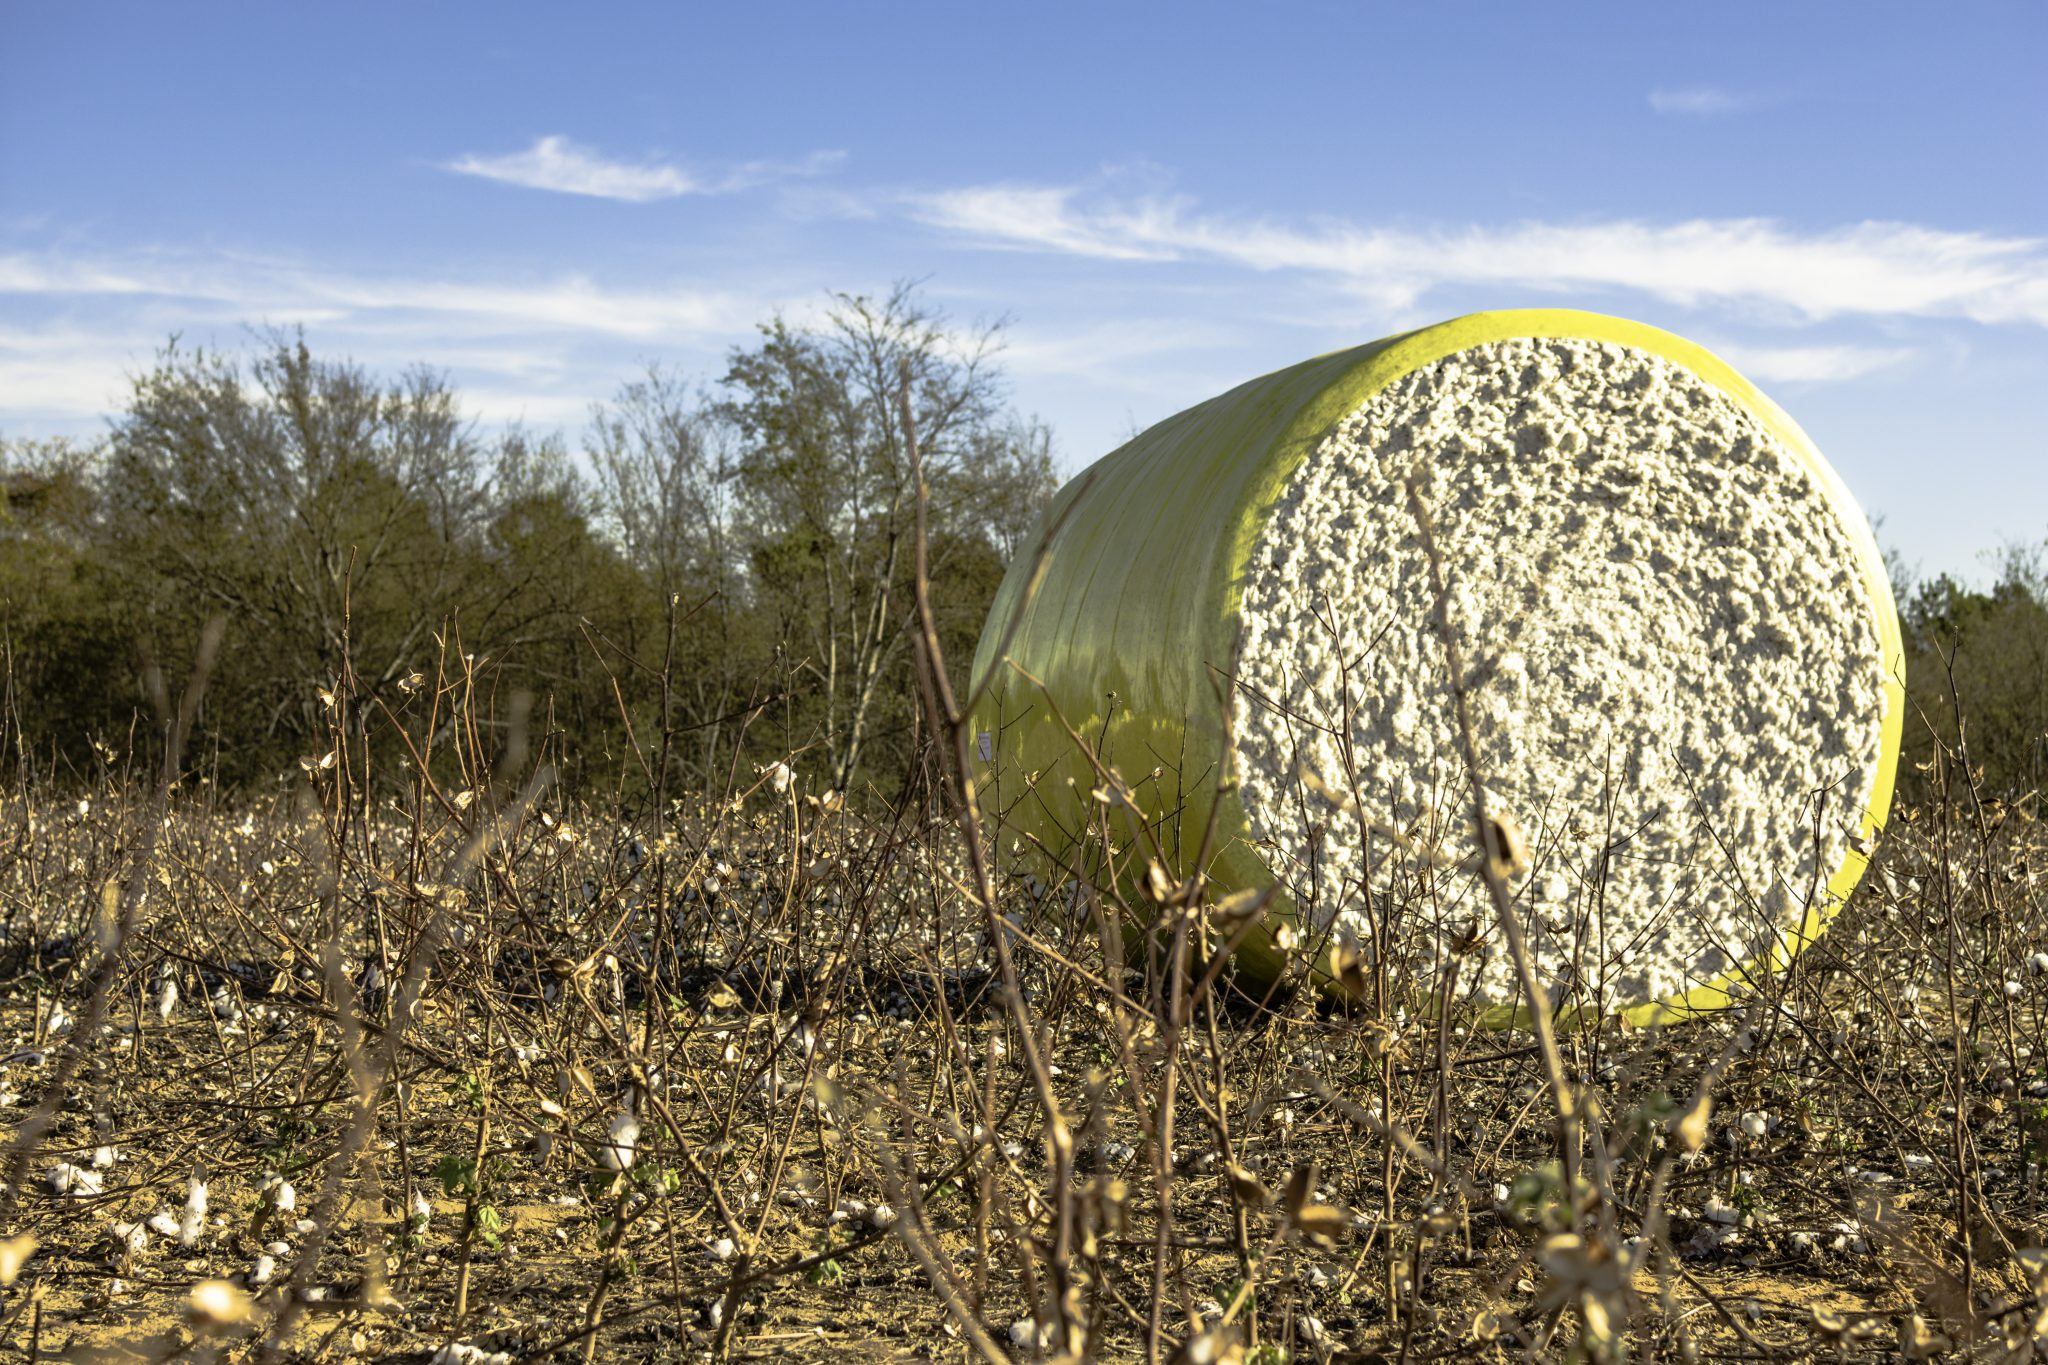 Harvested cotton field with a wrapped cotton bale to the right